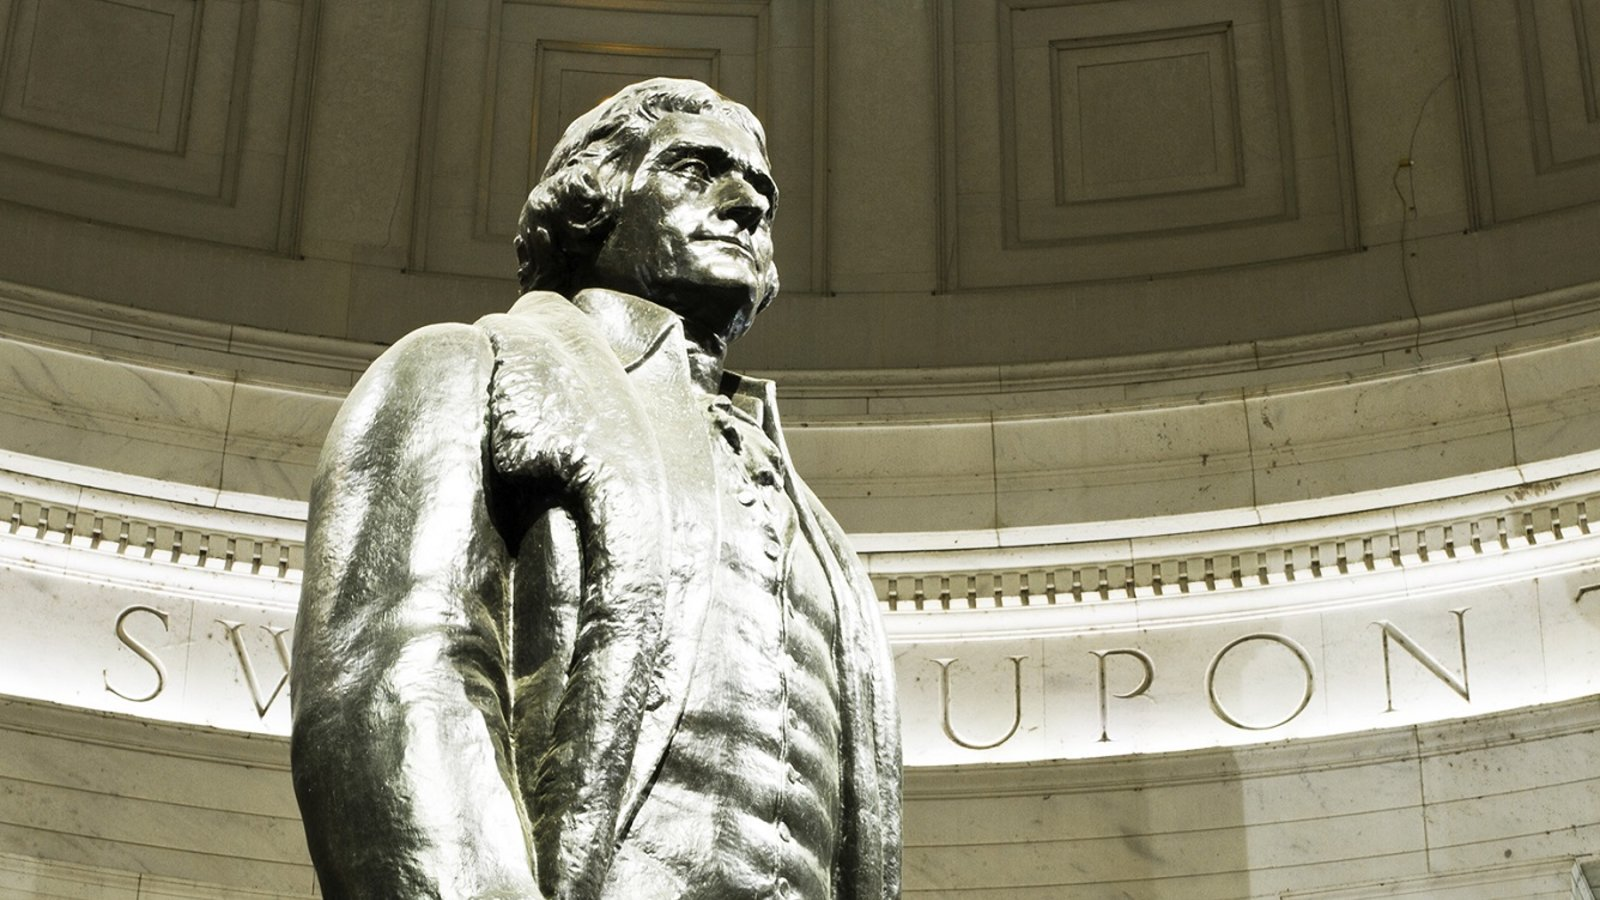 Confusions about Jefferson and Hamilton